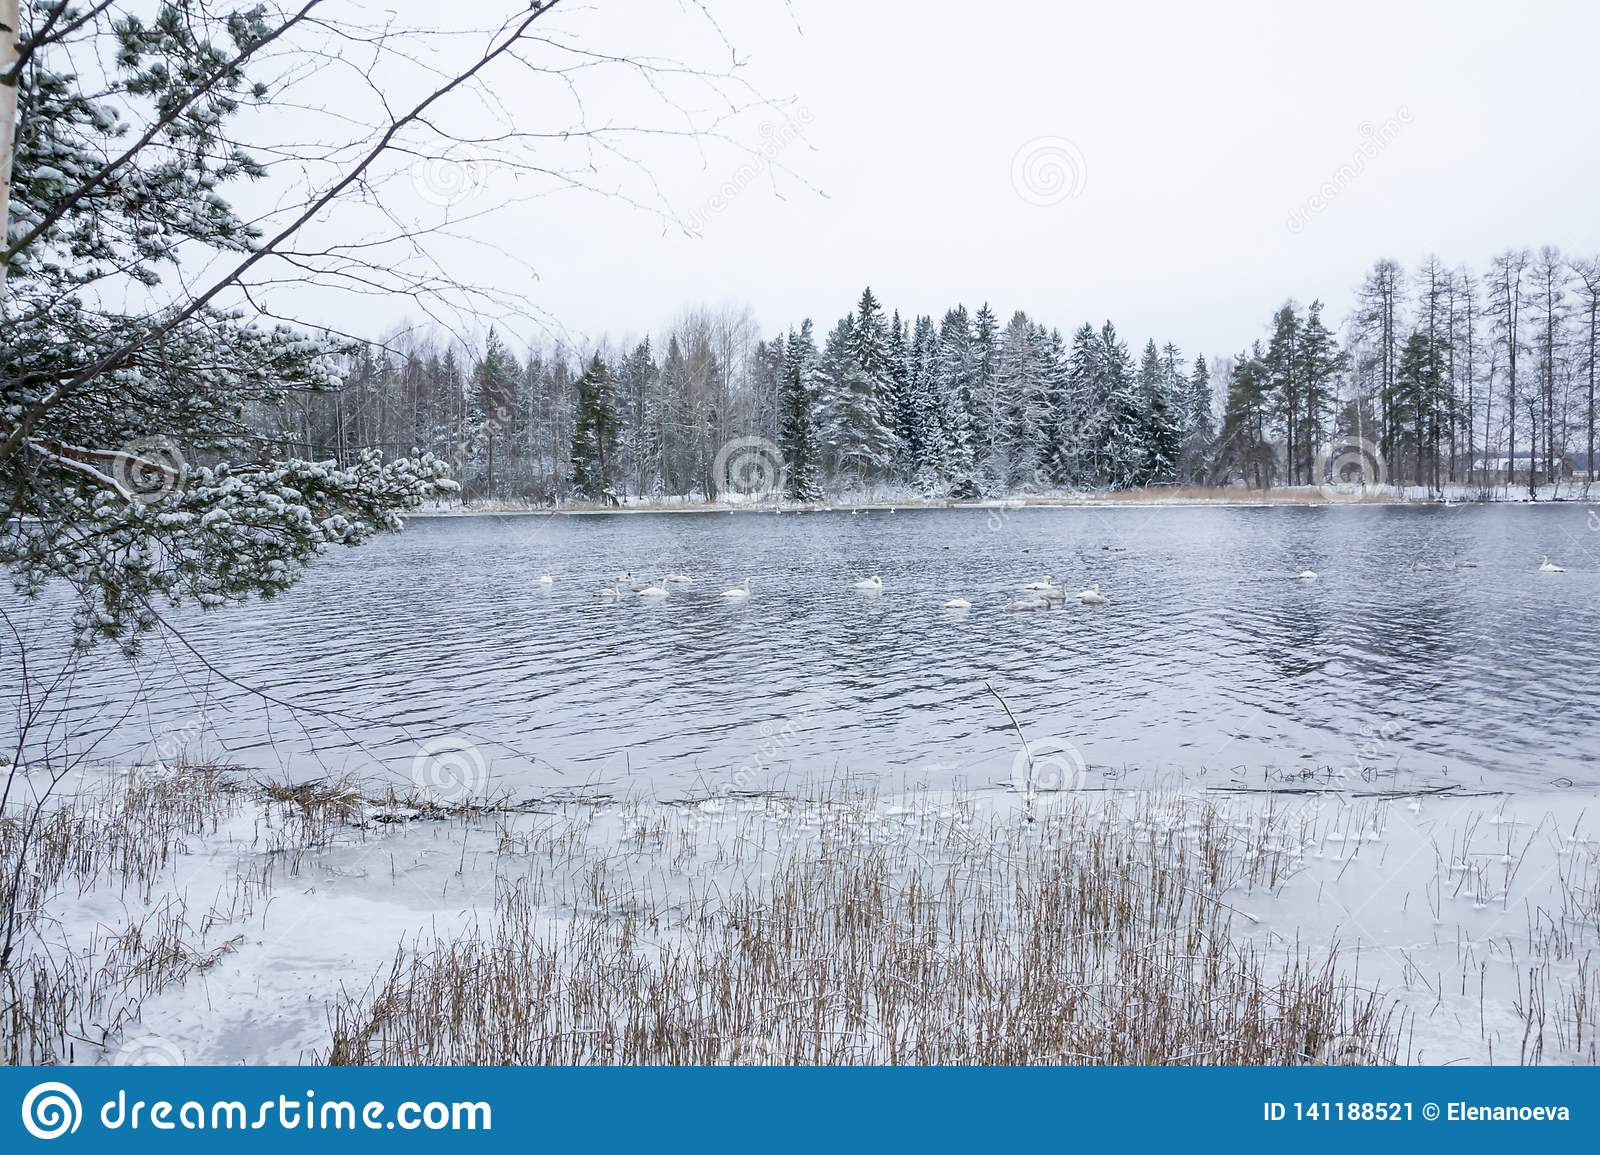 Winter calm landscape on a river with a white swans. Finland, river Kymijoki